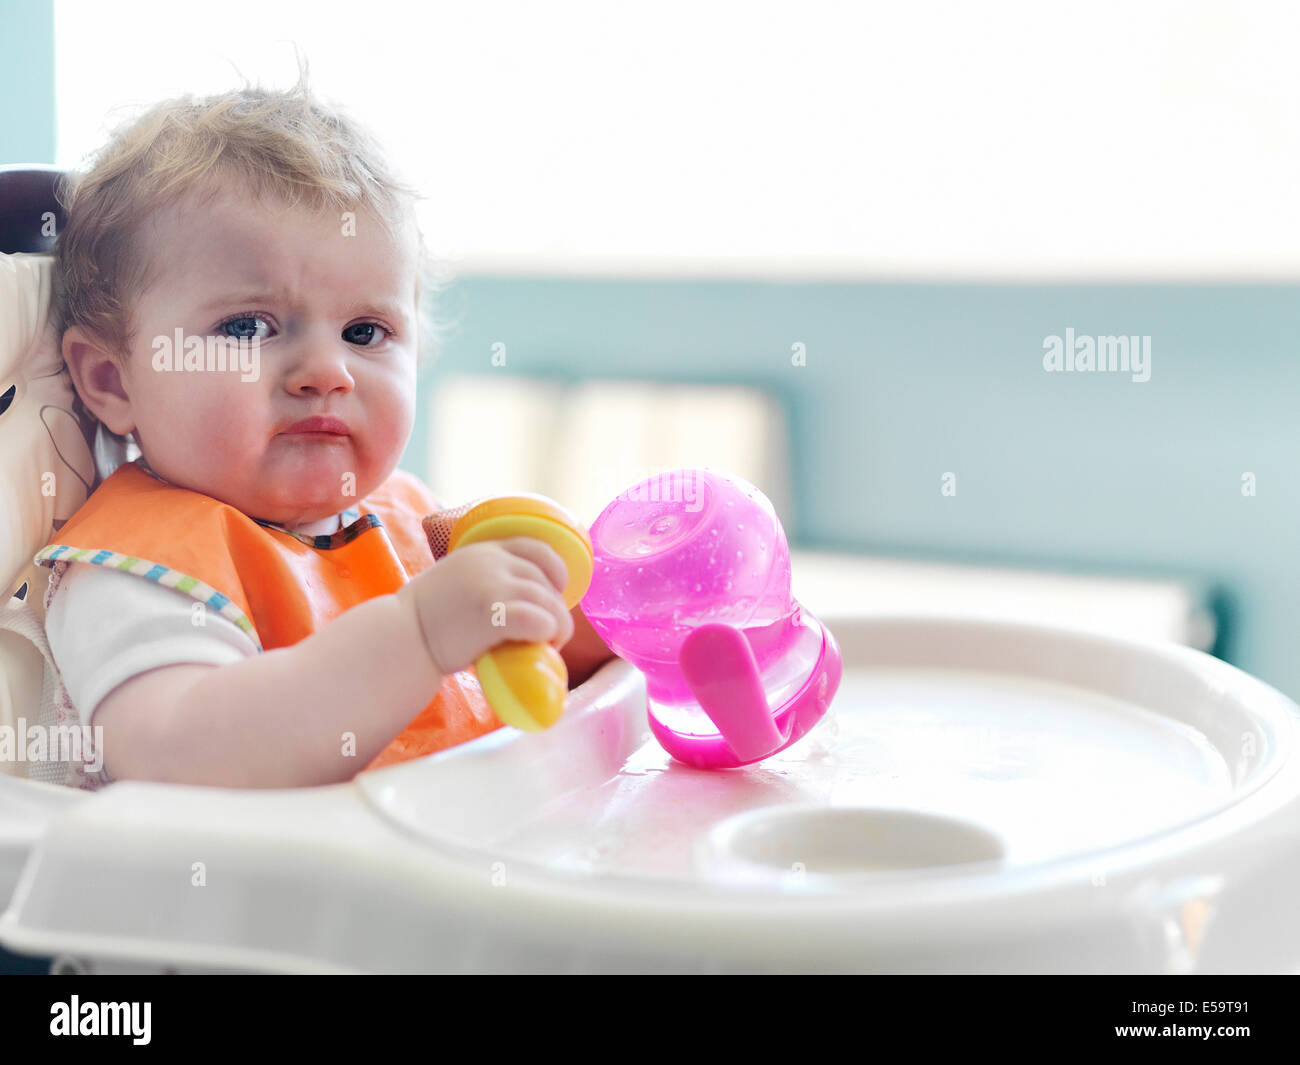 Baby girl playing with sippy cup in high chair - Stock Image